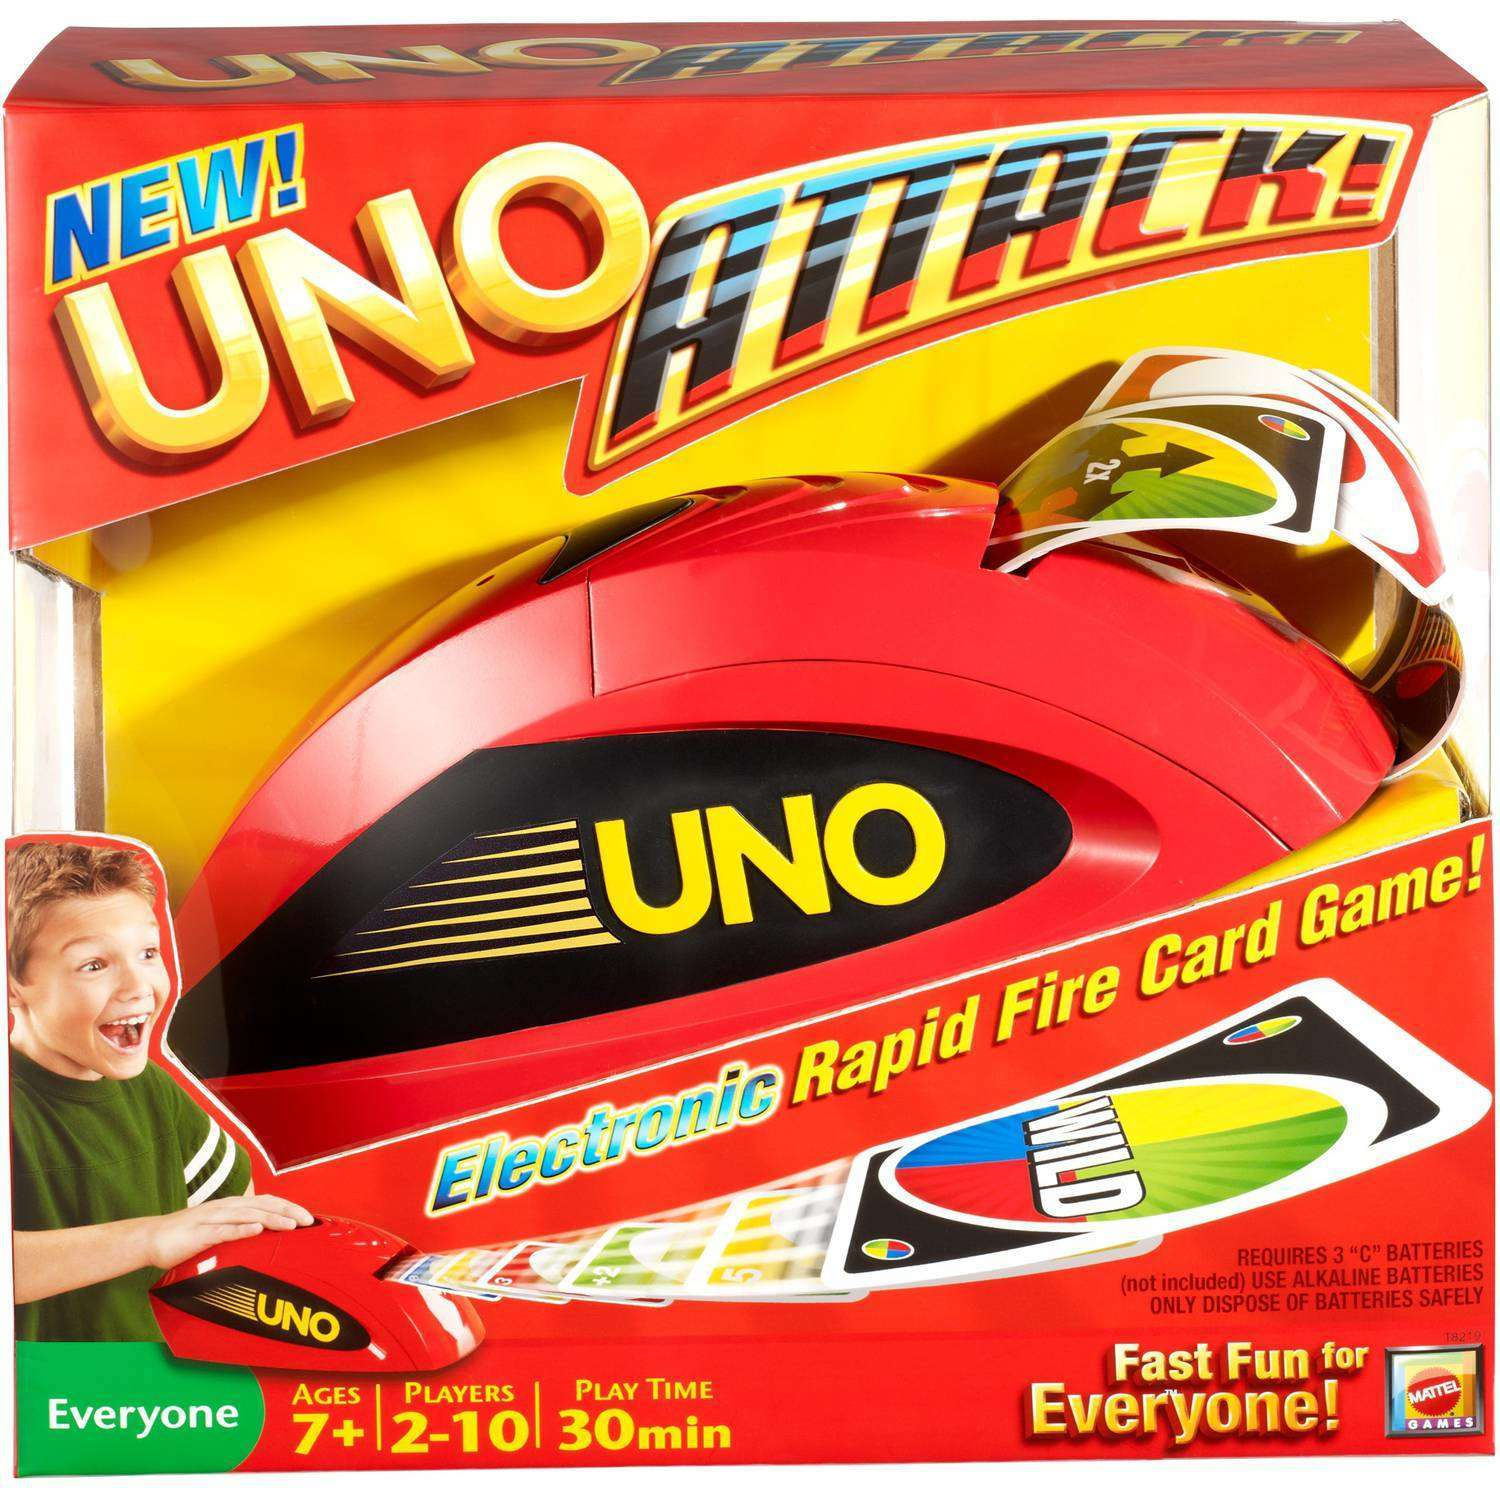 UNO ATTACK! Rapid Fire Card Game for 2-10 Players Ages 7Y+ by Mattel